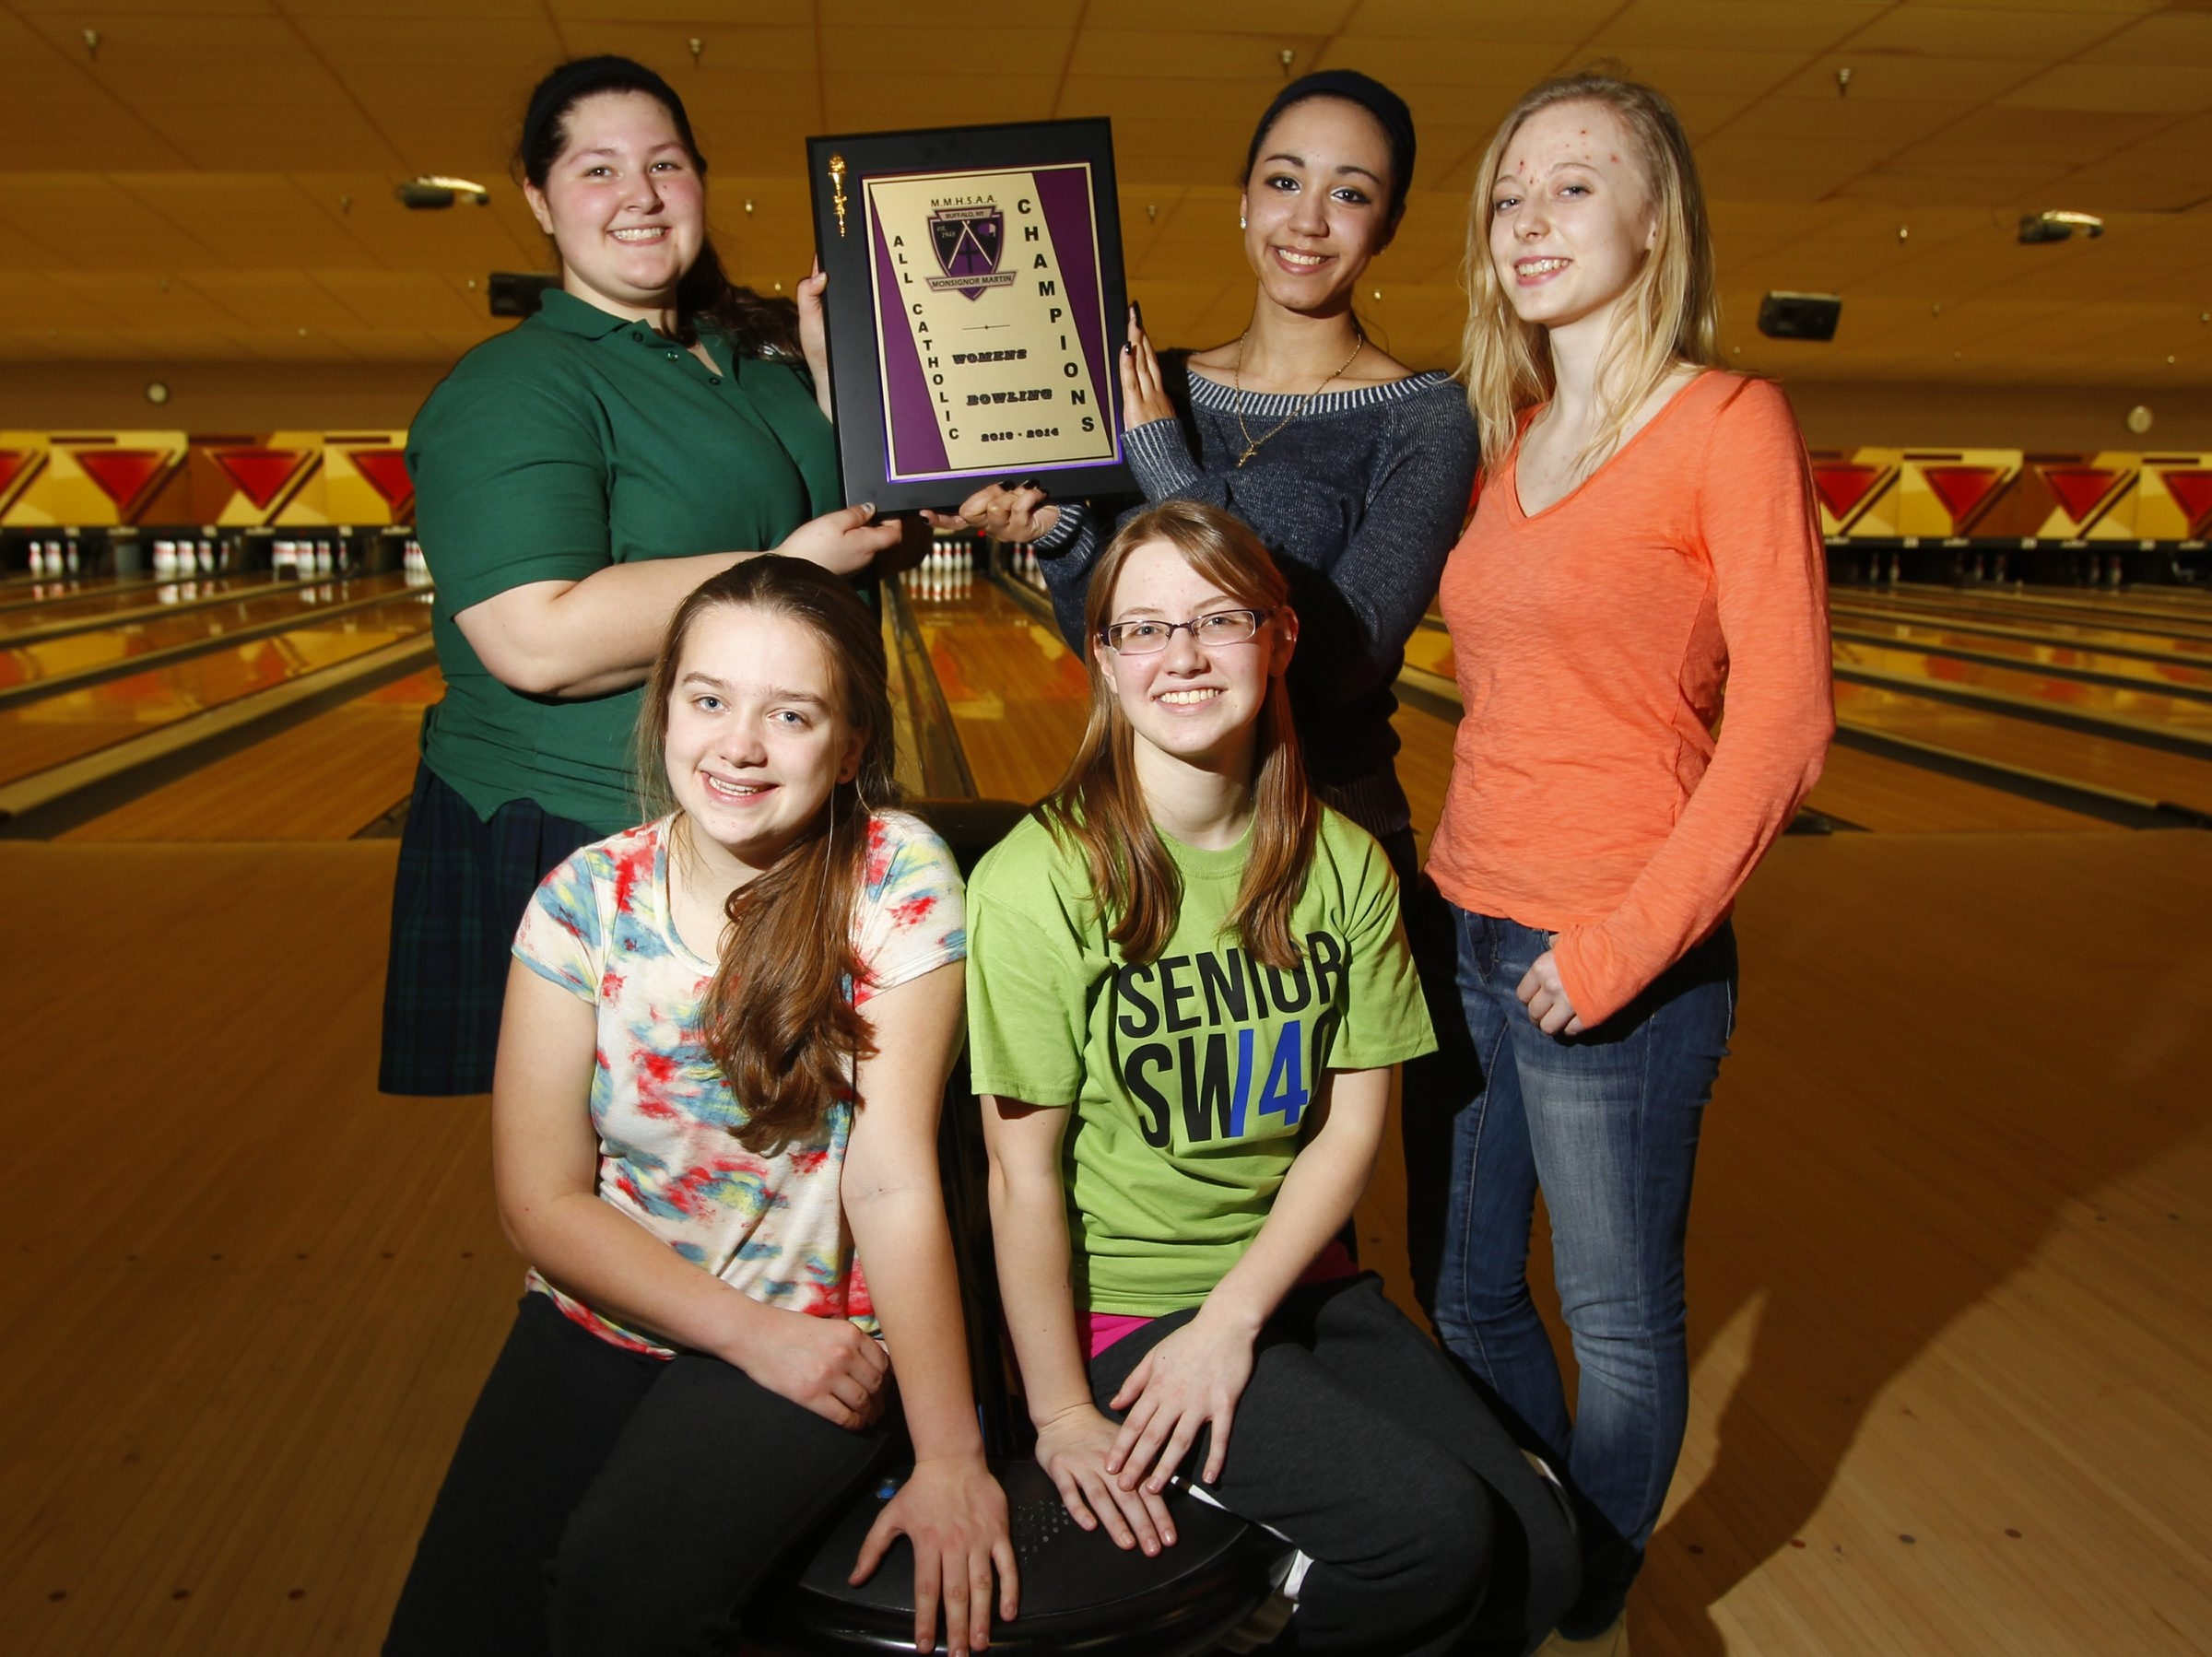 The Mount St. Mary bowling team proudly displays the Monsignor Martin bowling championship award they won Tuesday at AMF Thruway Lanes. In front are Danielle Cunliffe, left, and Caitlin Orgek. Standing, from the left, are: Alexis Greenauer, Catherine Boyd and Jordan Luce.